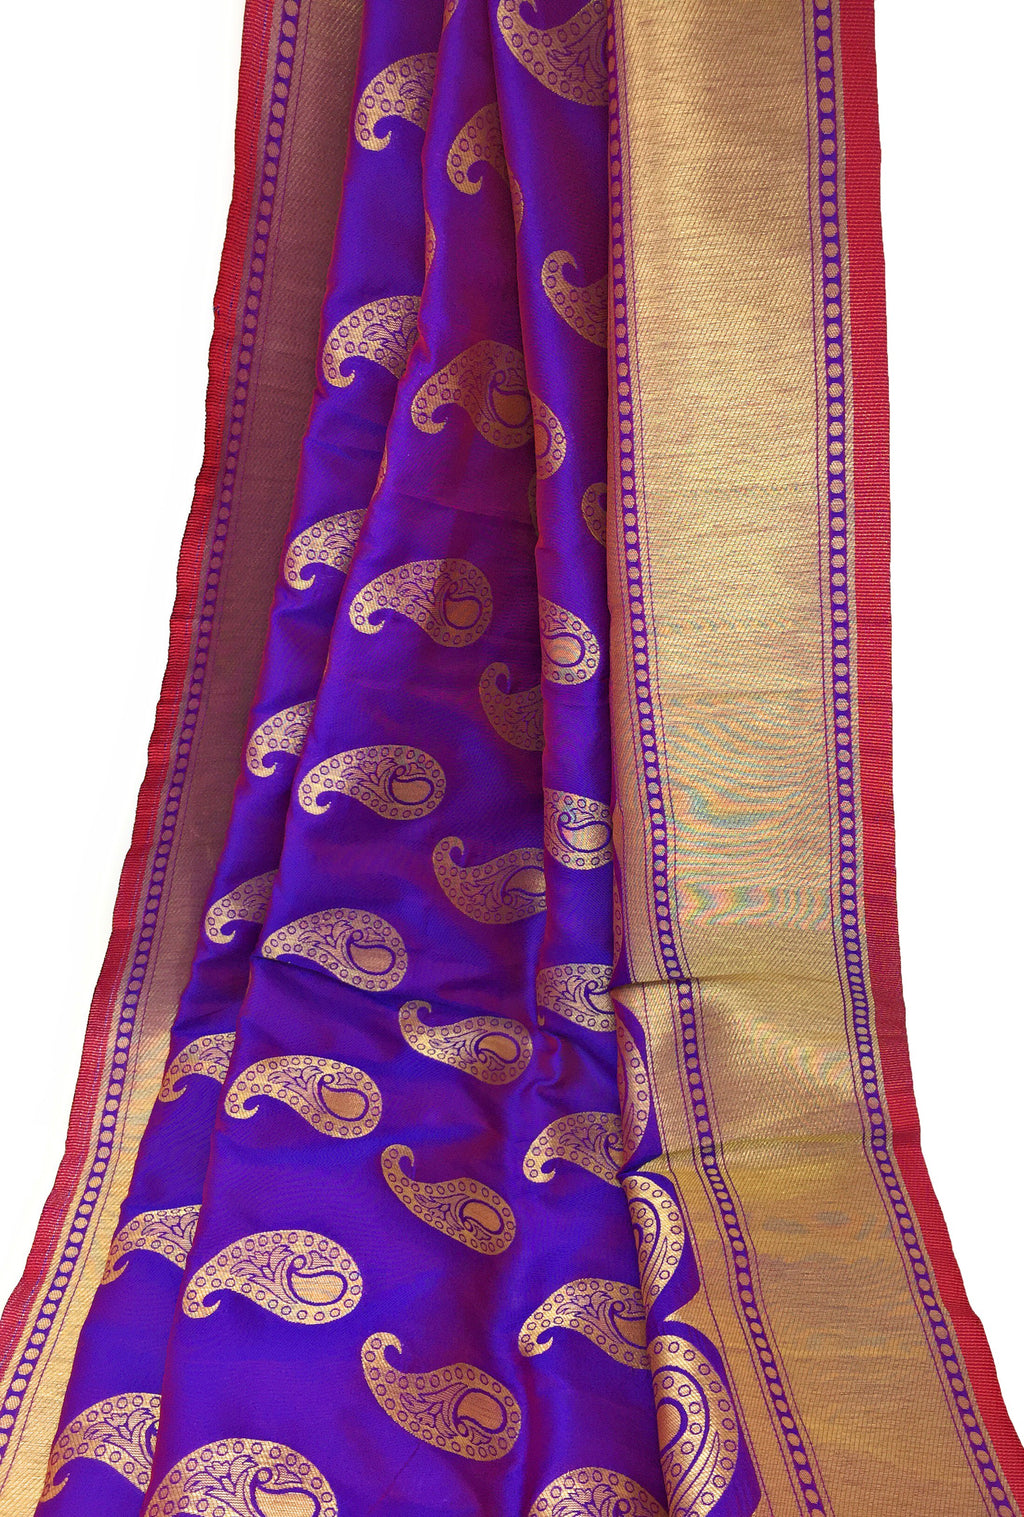 Purple Brocade Fabric With Gold Paisley Motifs N Gold Border